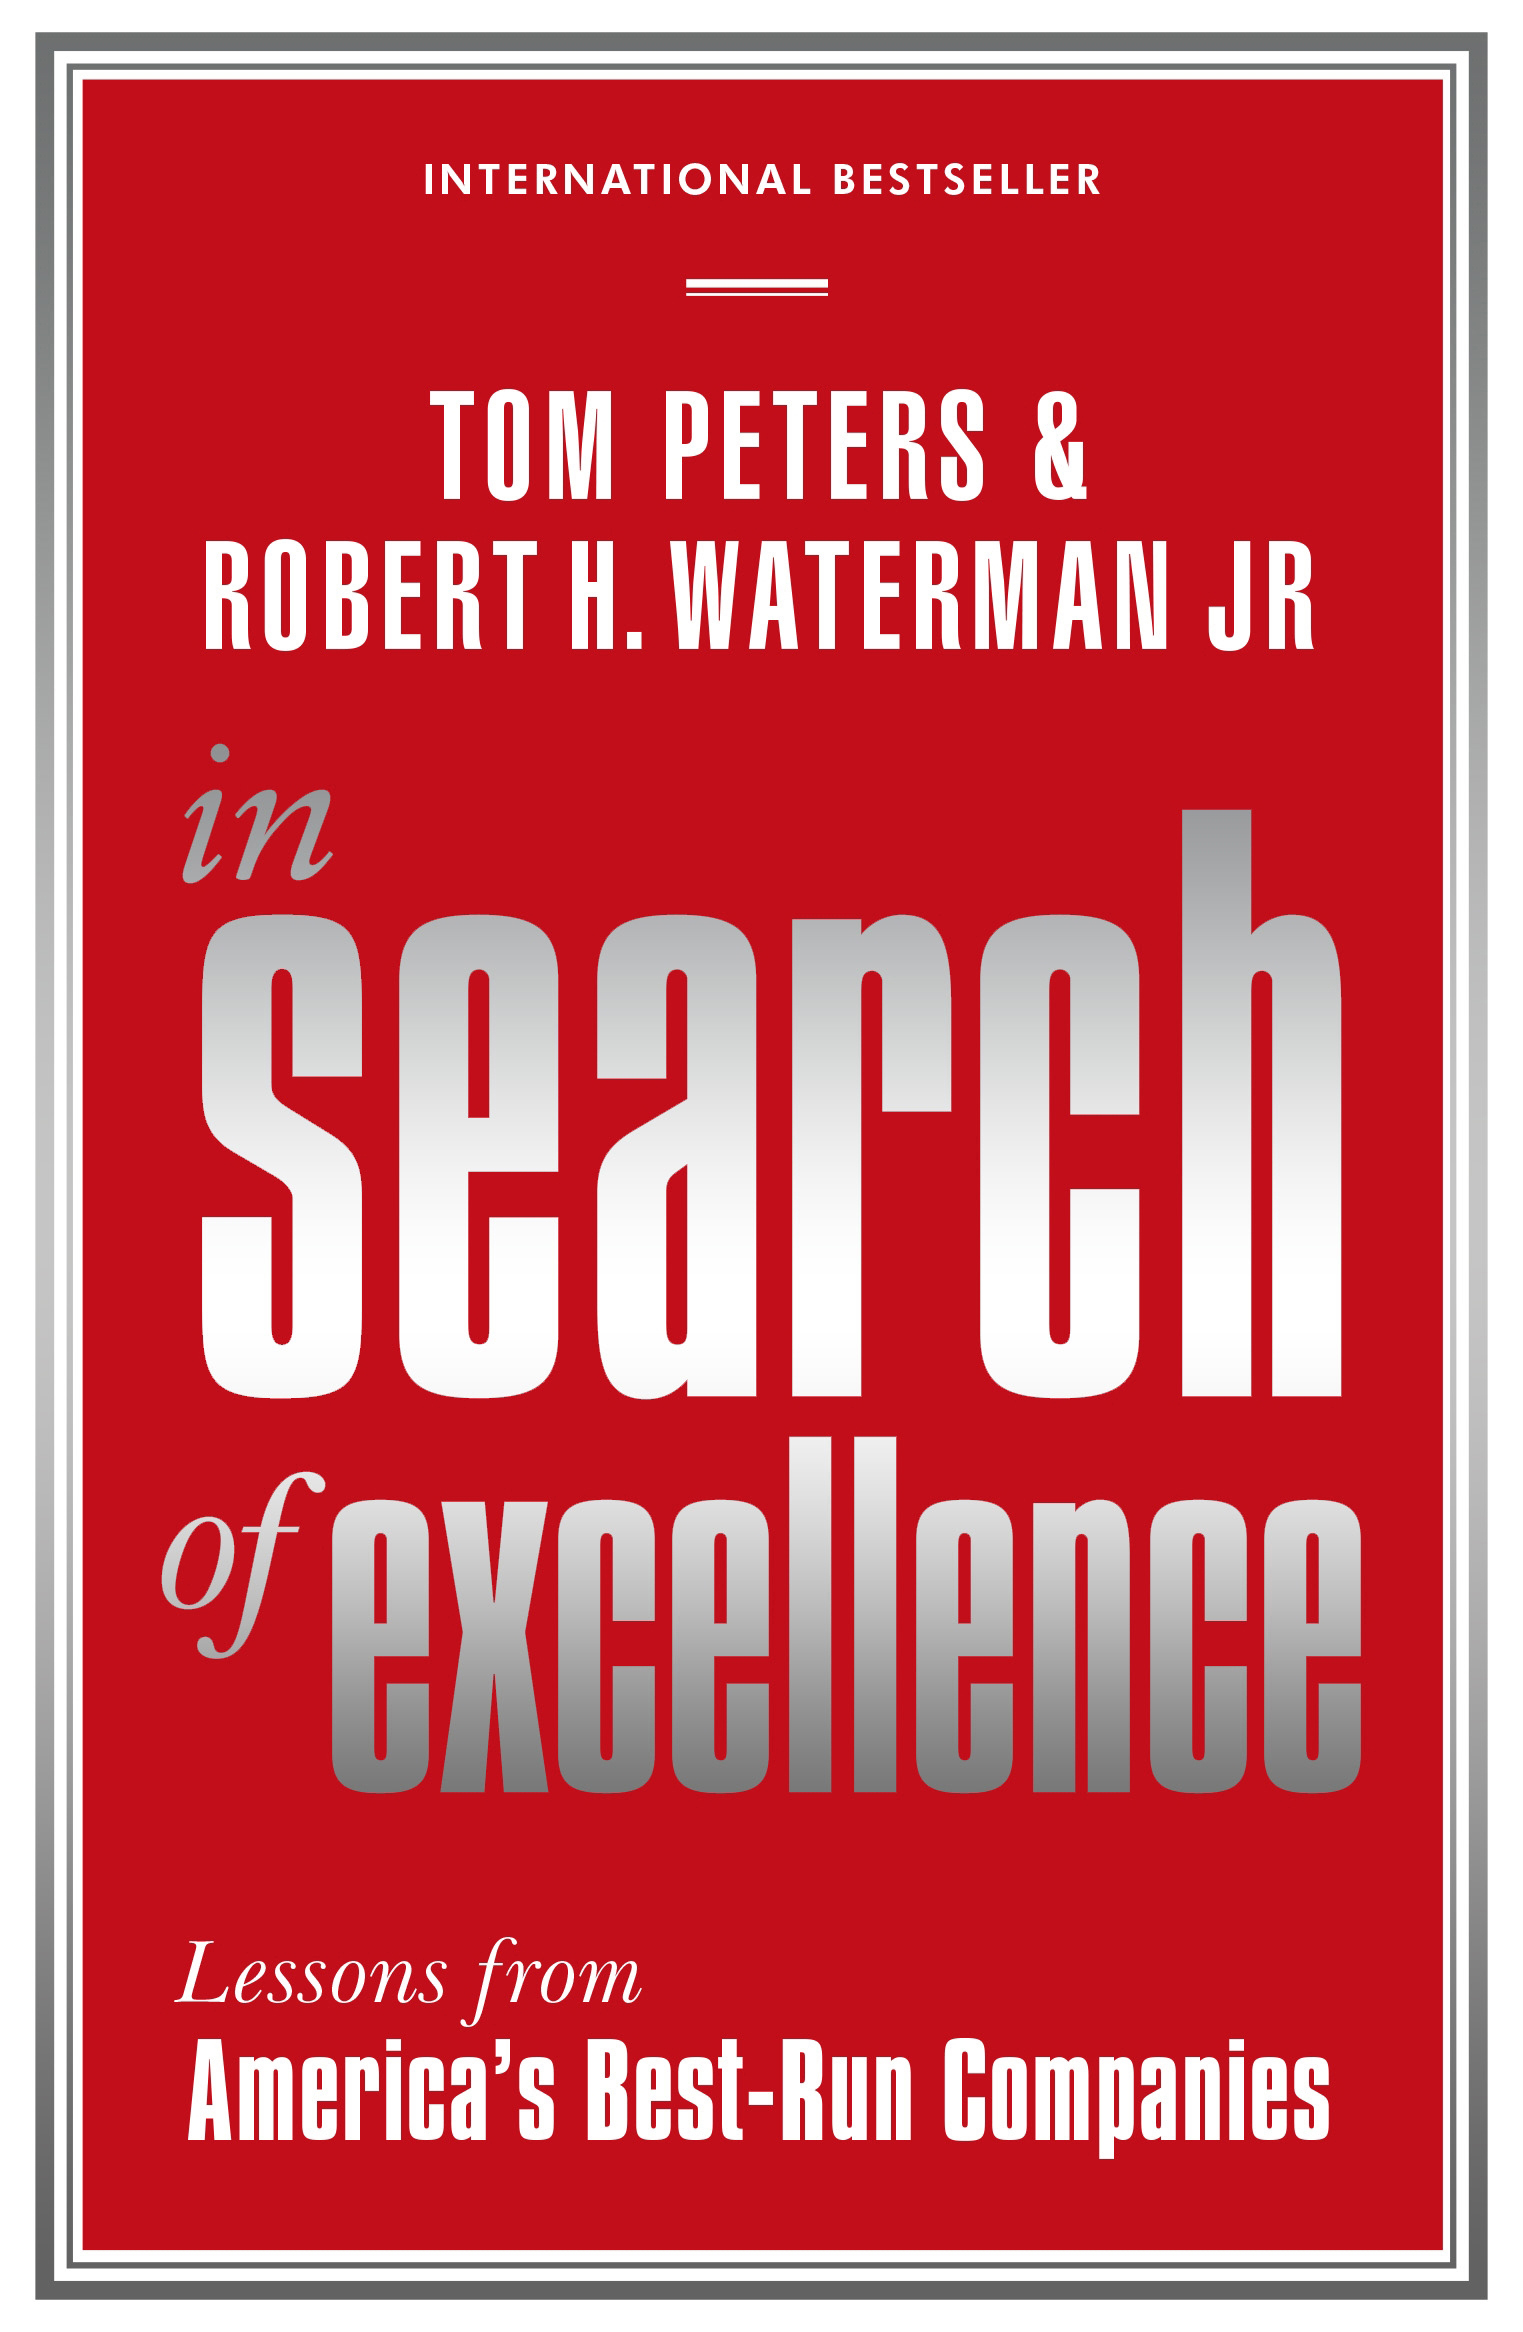 In search of excellence robert h waterman jr and tom peters in search of excellence publicscrutiny Choice Image